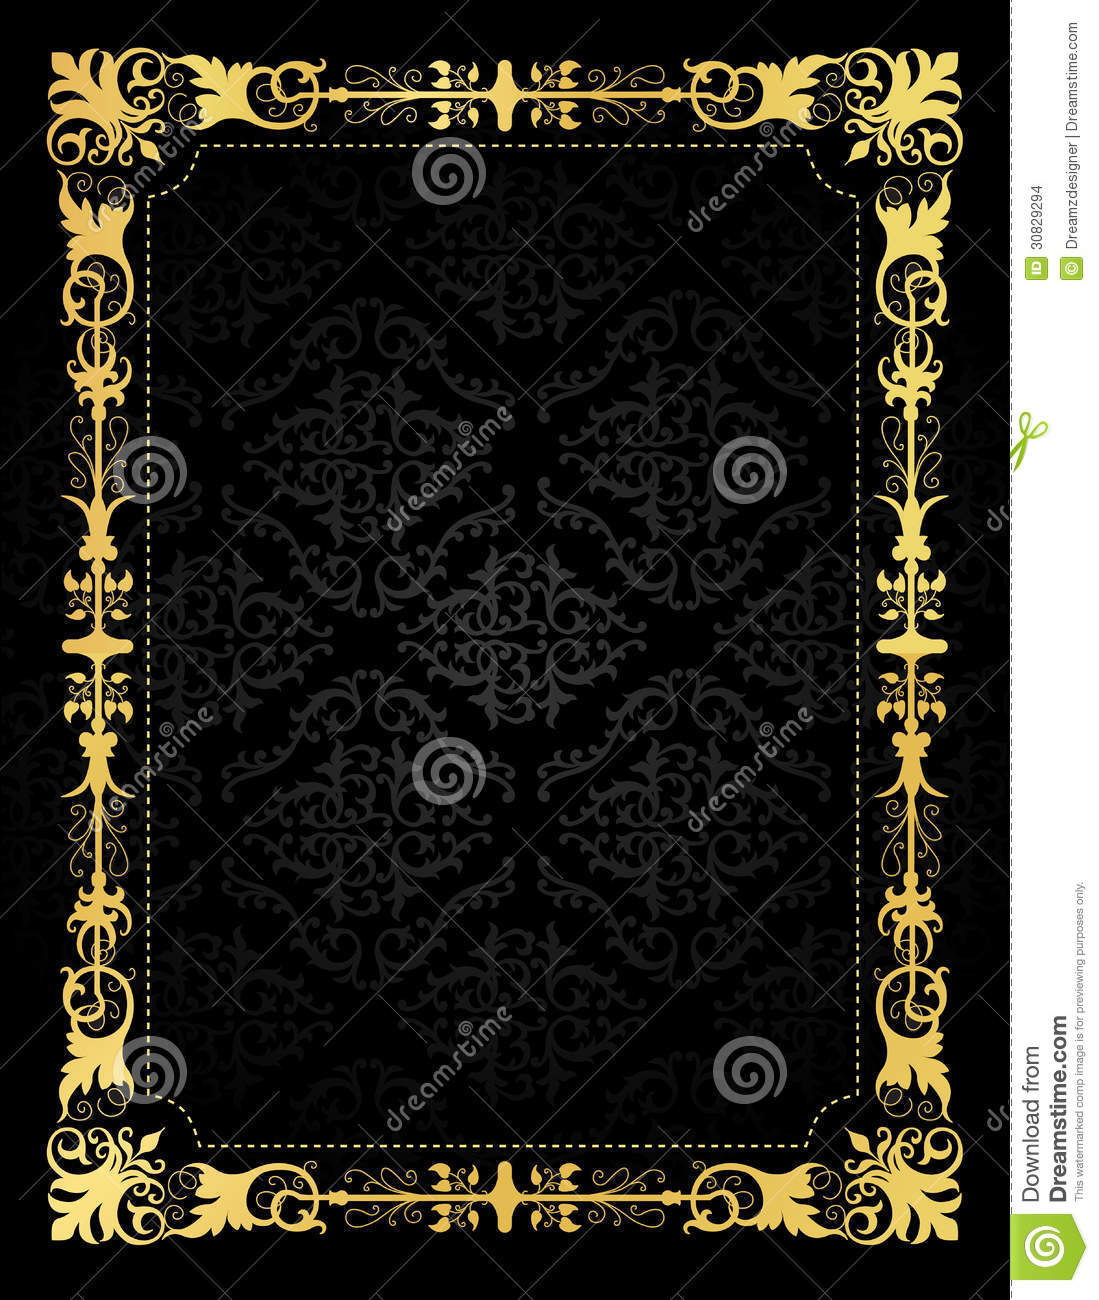 Invitation Card Ornamental Frame And Damask Backgr Stock Vector ...